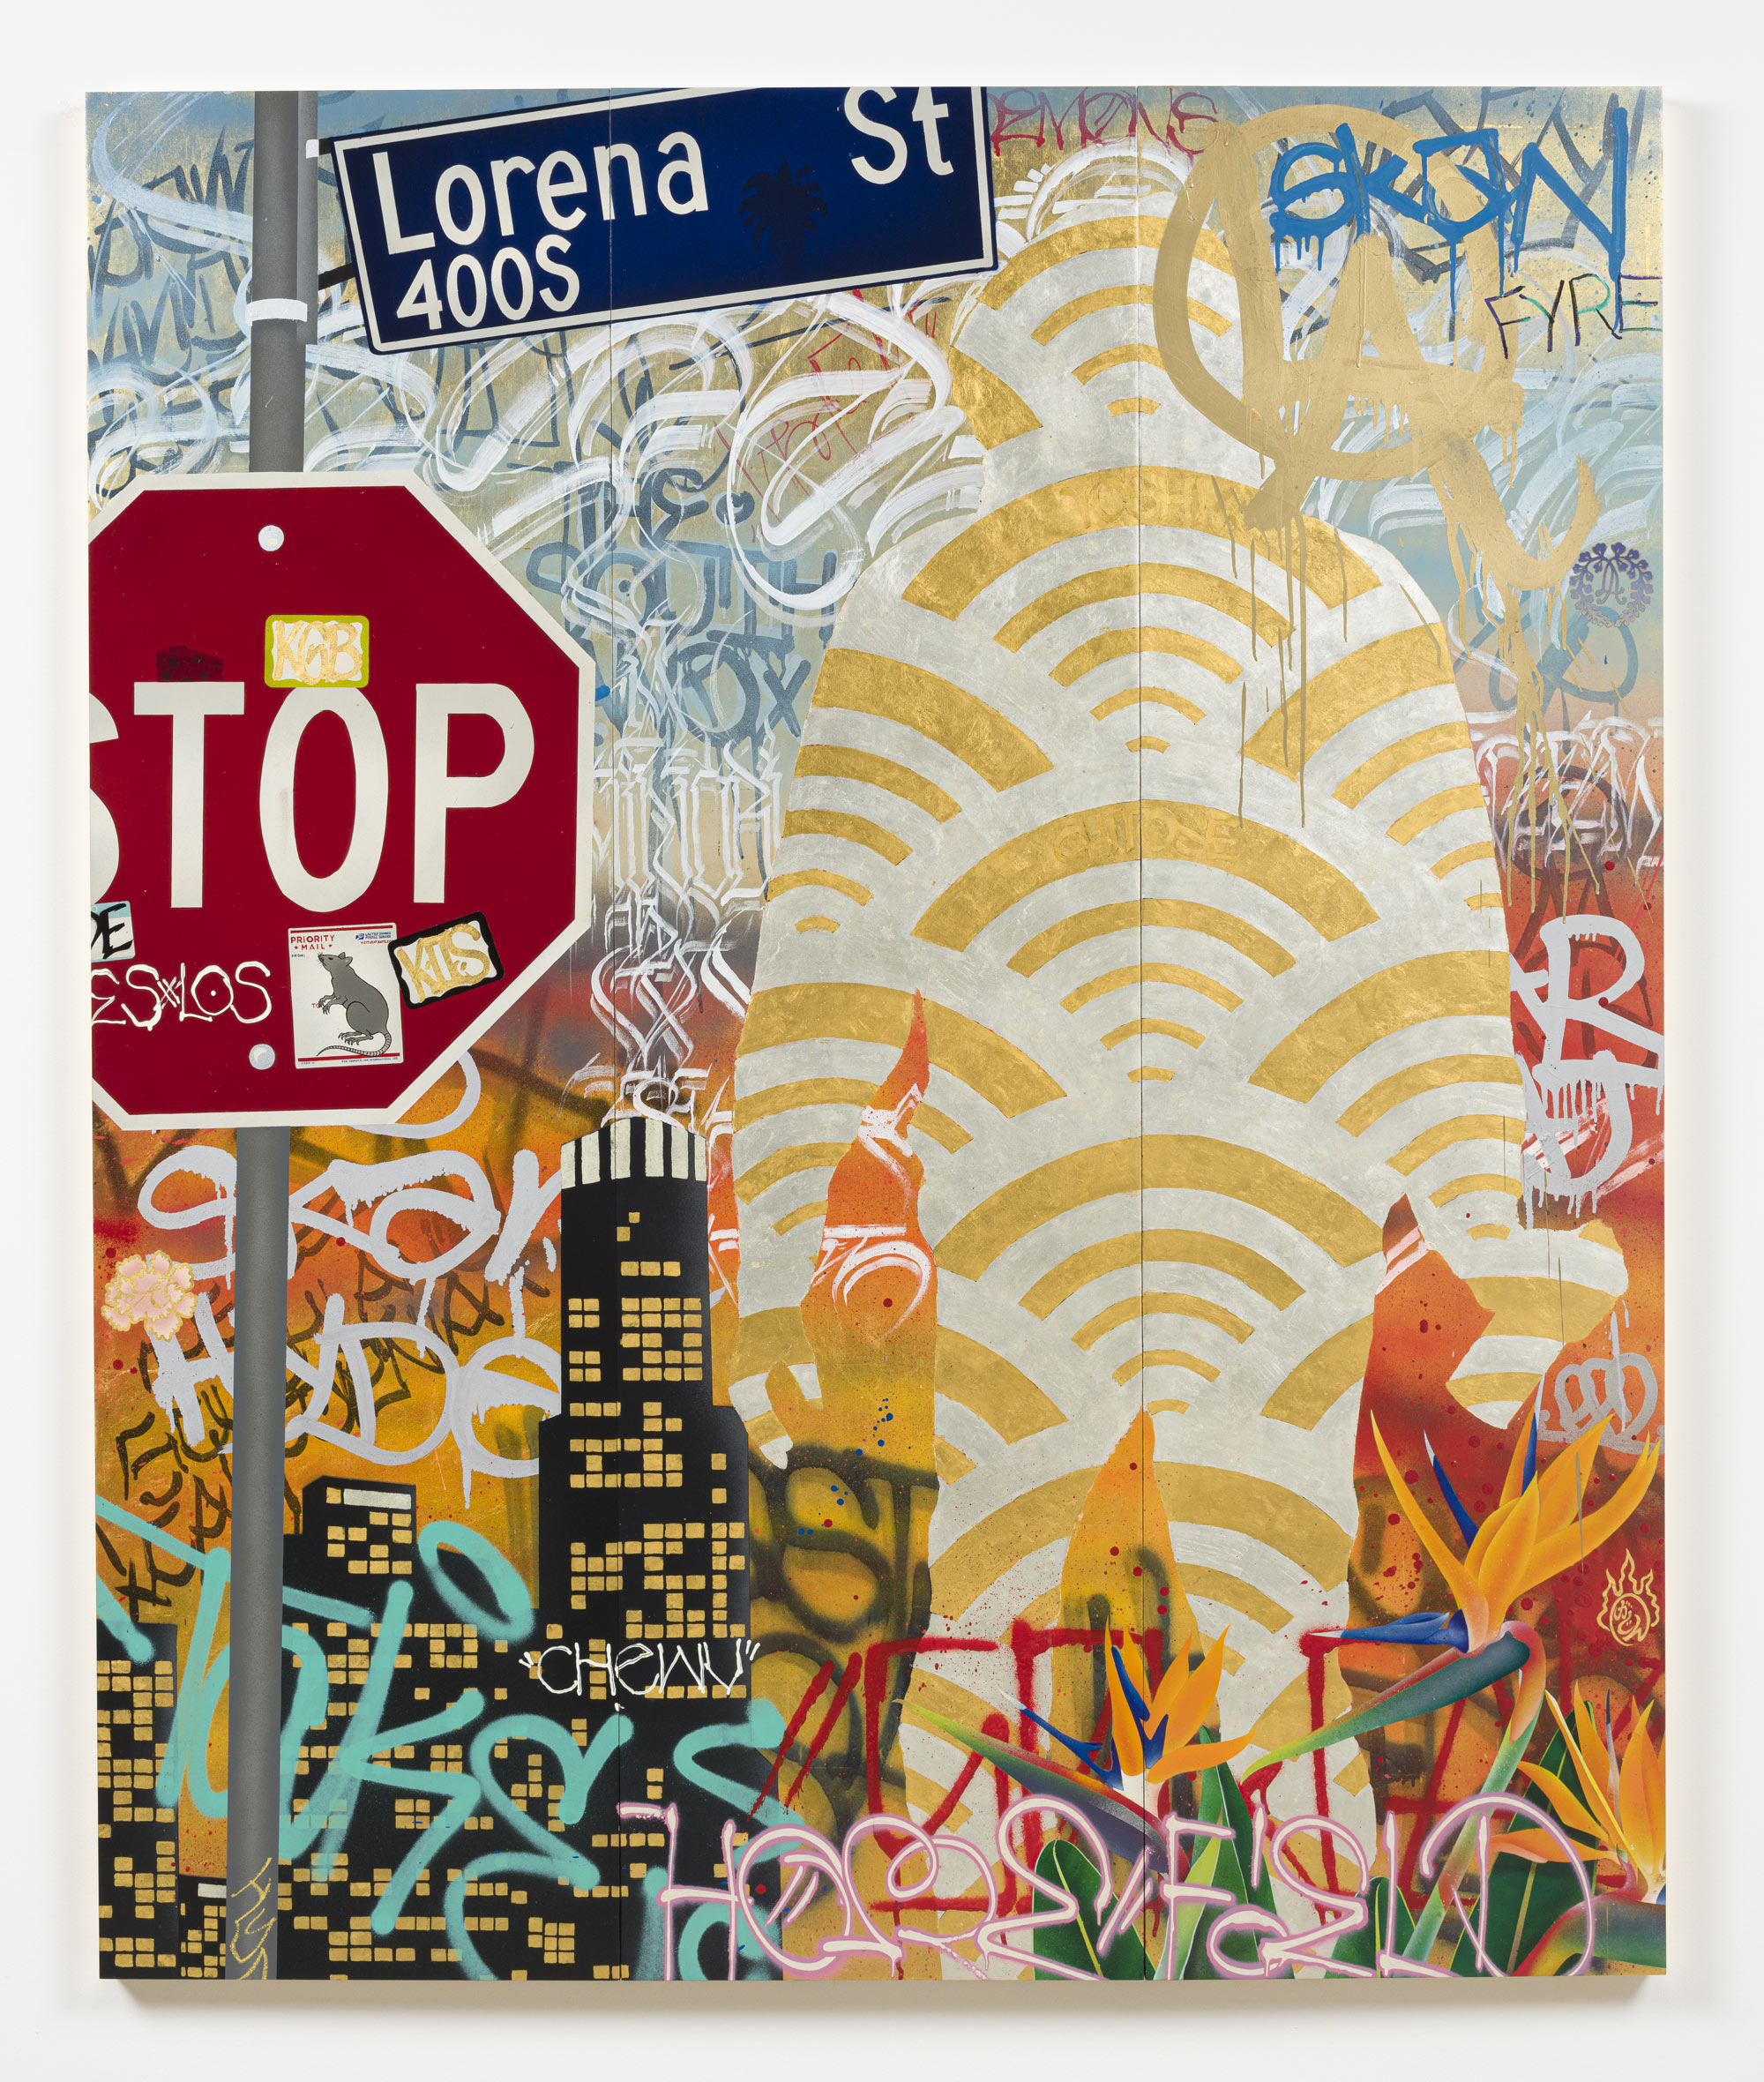 Gajin Fujita<br> Home Field LA, 2020<br> 24k gold leaf, 12k white gold leaf, spraypaint, acrylics, paint markers, Sakura streaks on three wood panels<br> Overall: 72 x 60 in. (182.9 x 152.4 cm)<br> Each Panel 72 x 20 in. (182.9 x 50.8 cm)<br> $160,000.00